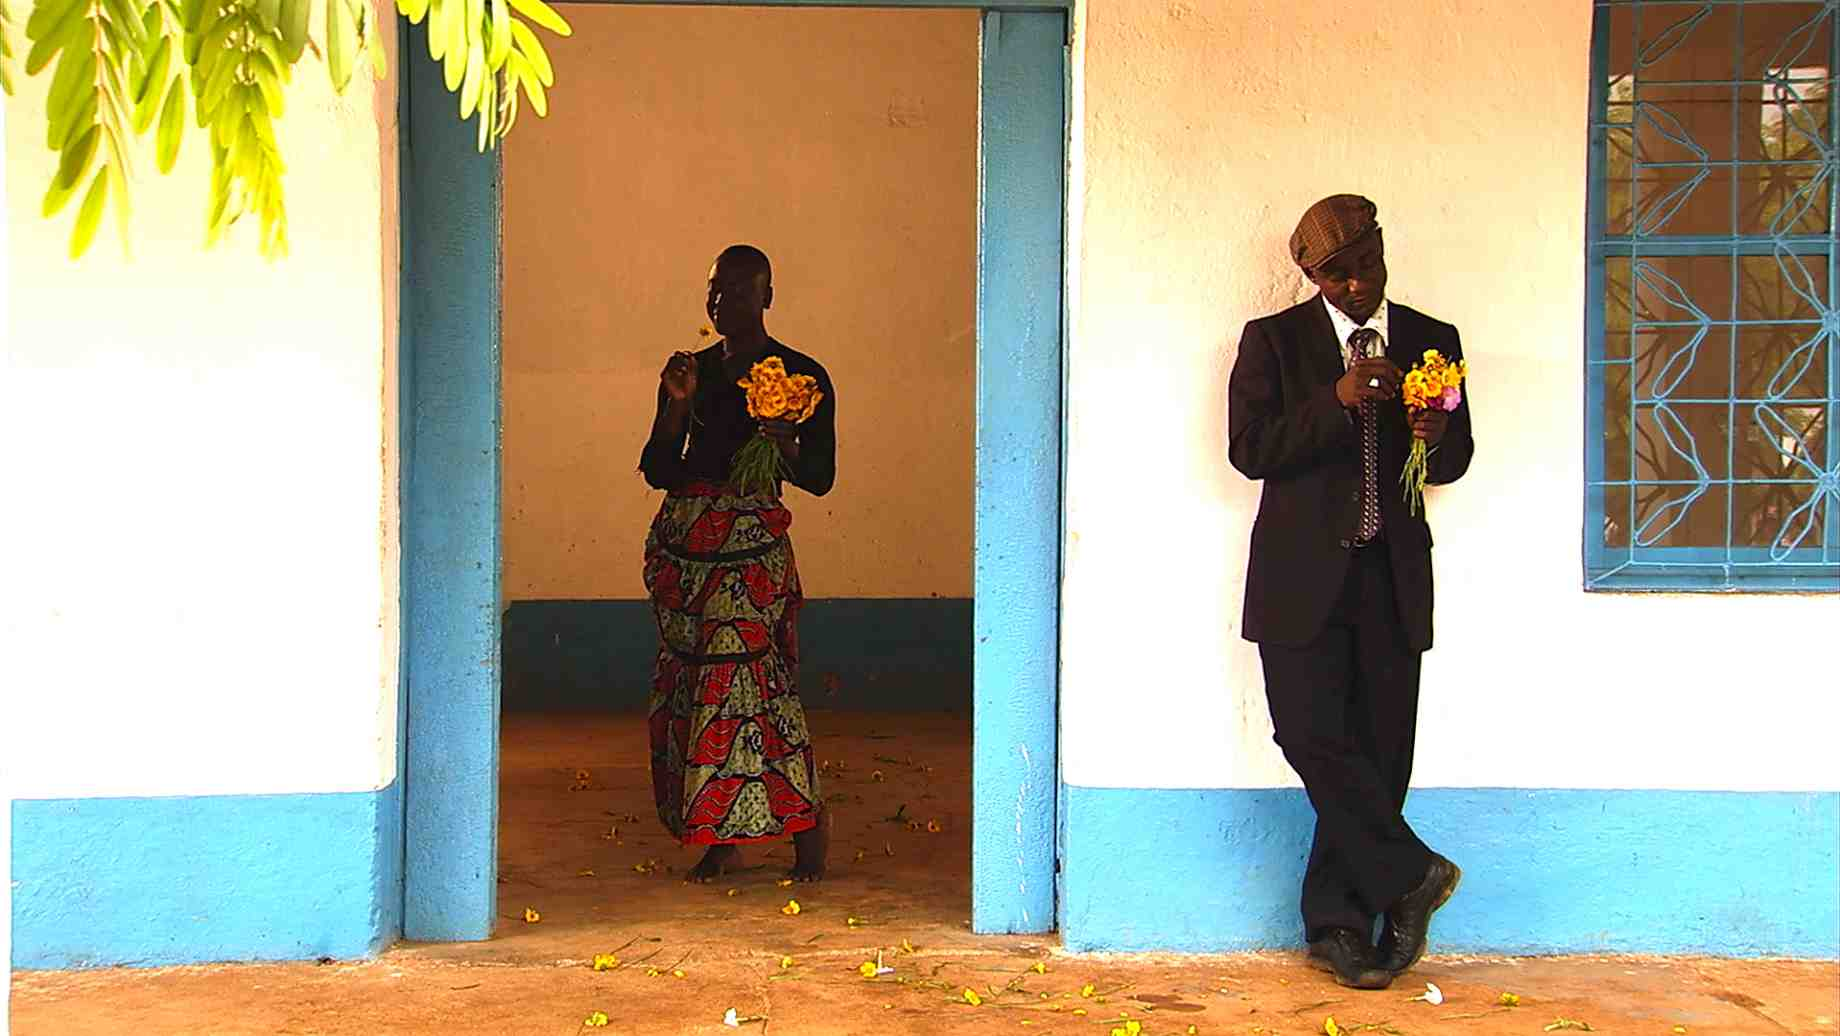 Souleymane Badolo, in NORA, wooing the heart of Nora with flowers and poetry.